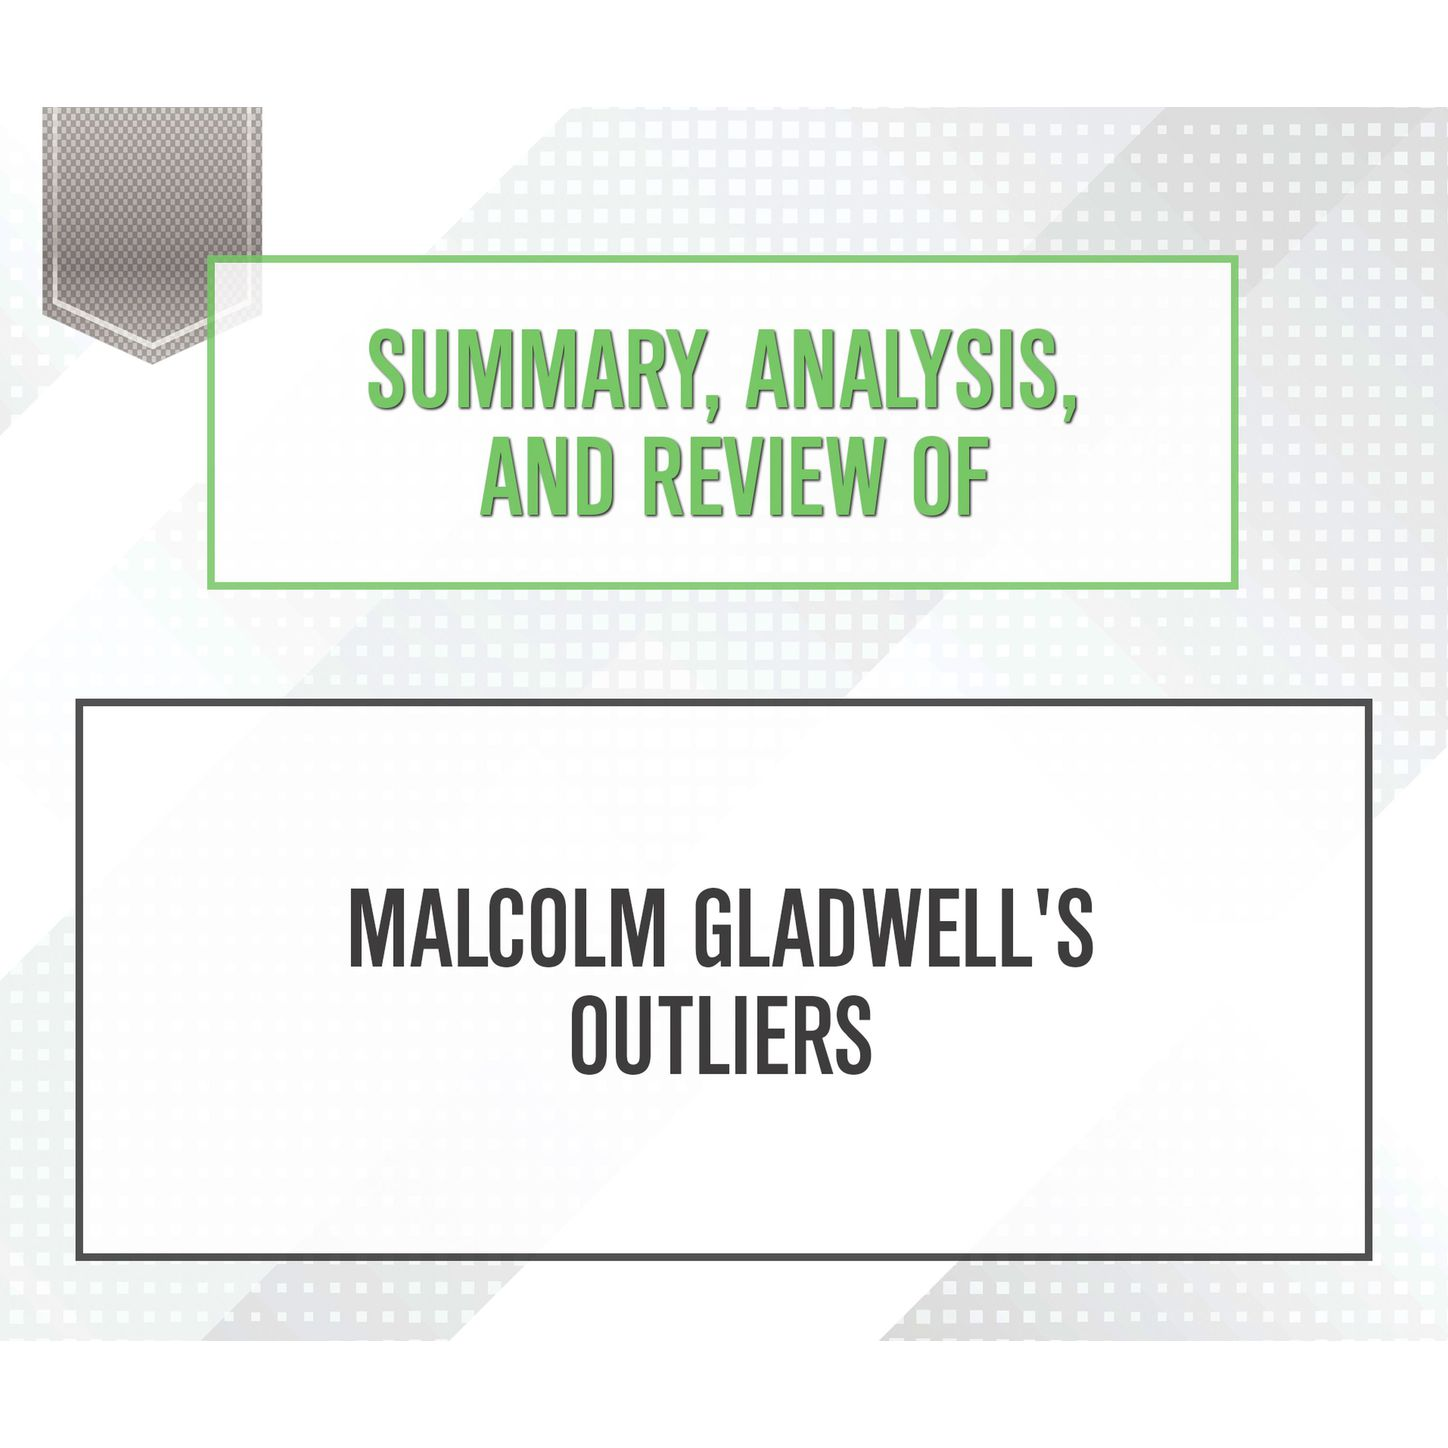 Summary, Analysis, and Review of Malcolm Gladwell's Outliers (Unabridged)